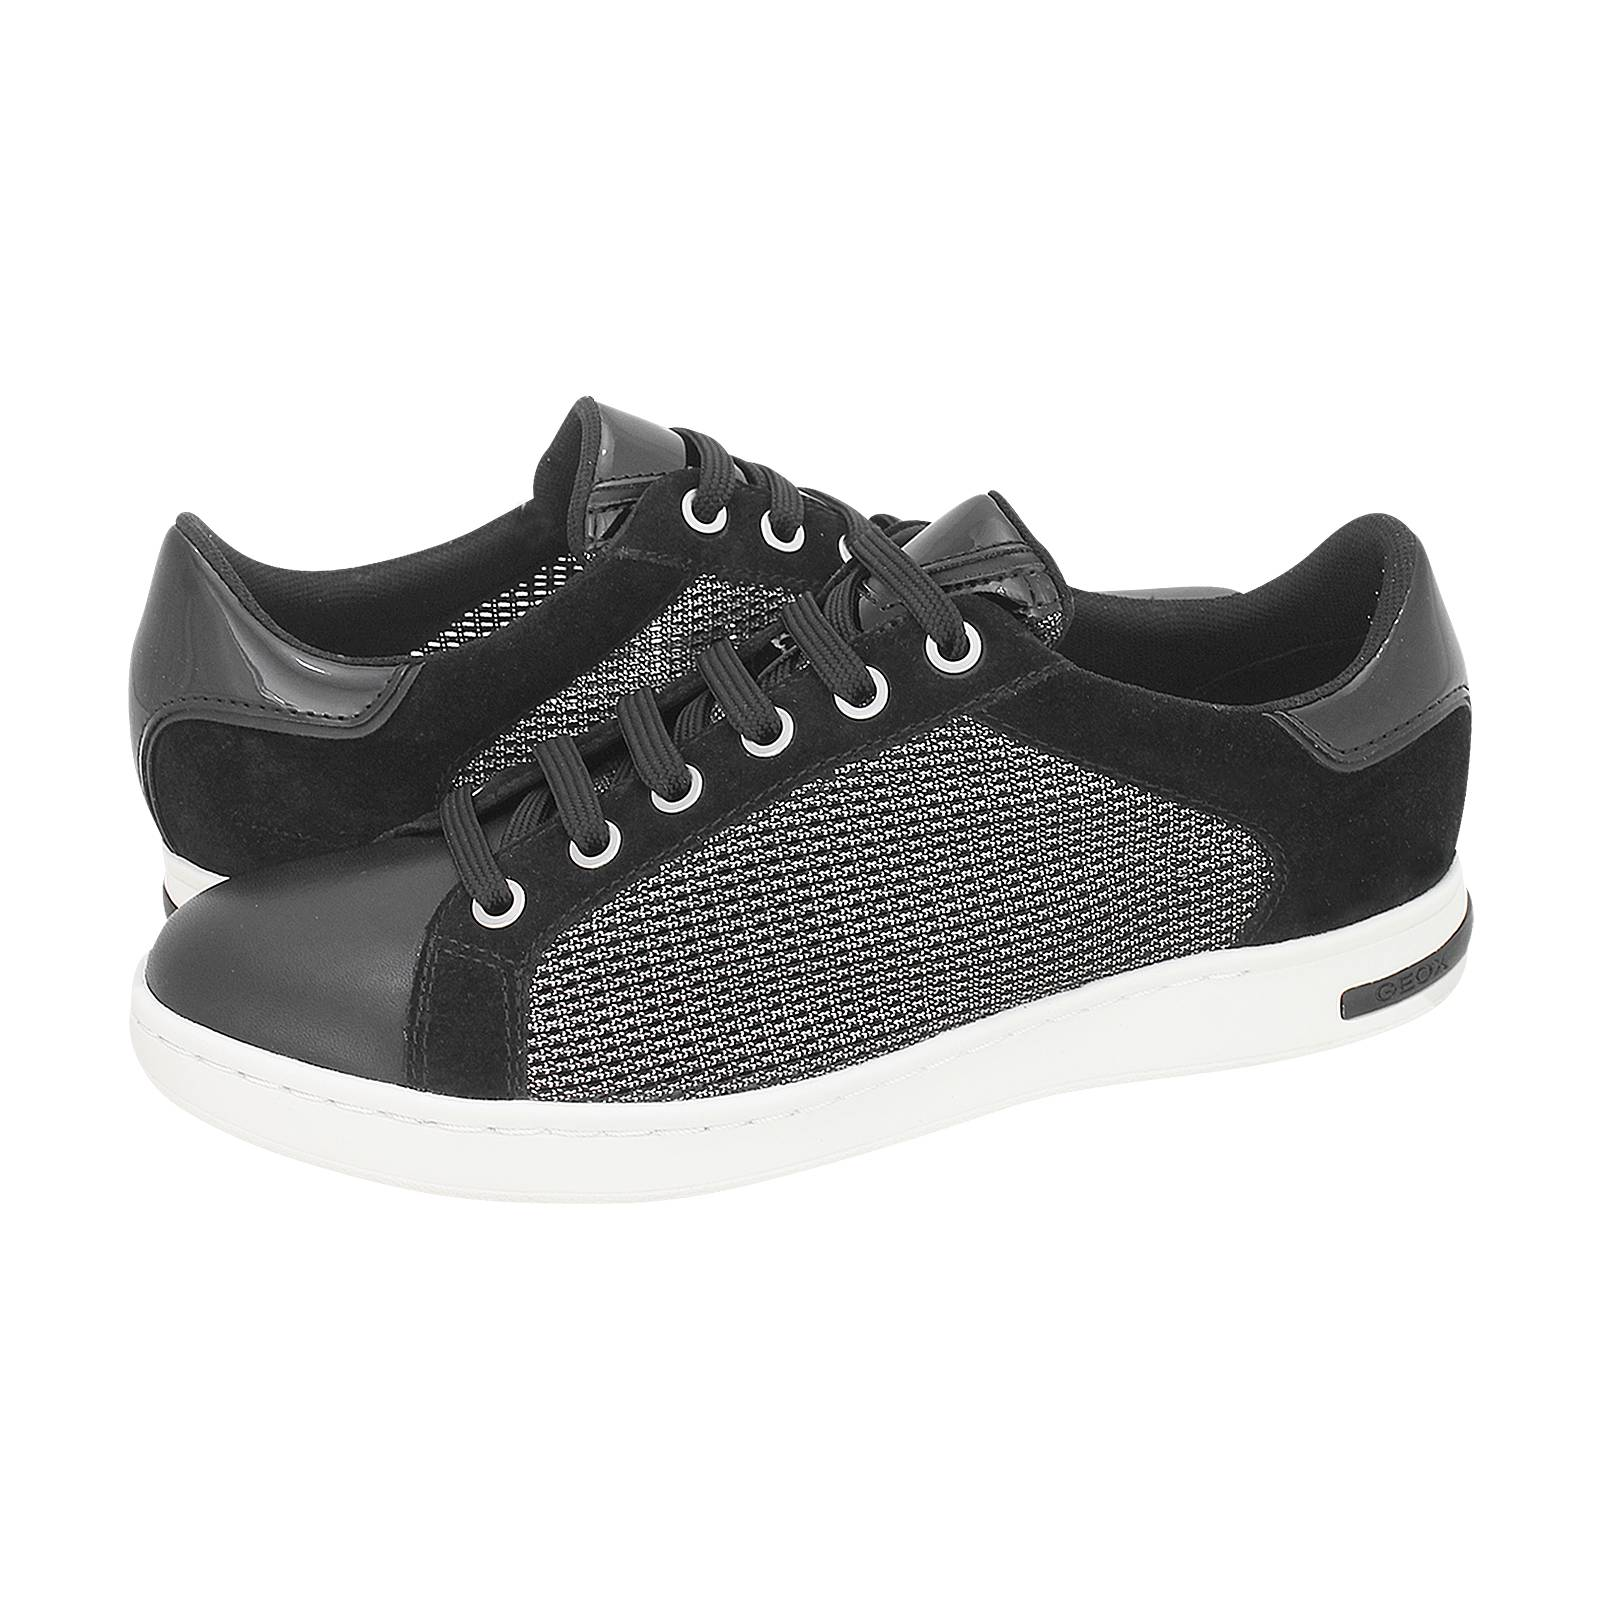 Geox Claro casual shoes